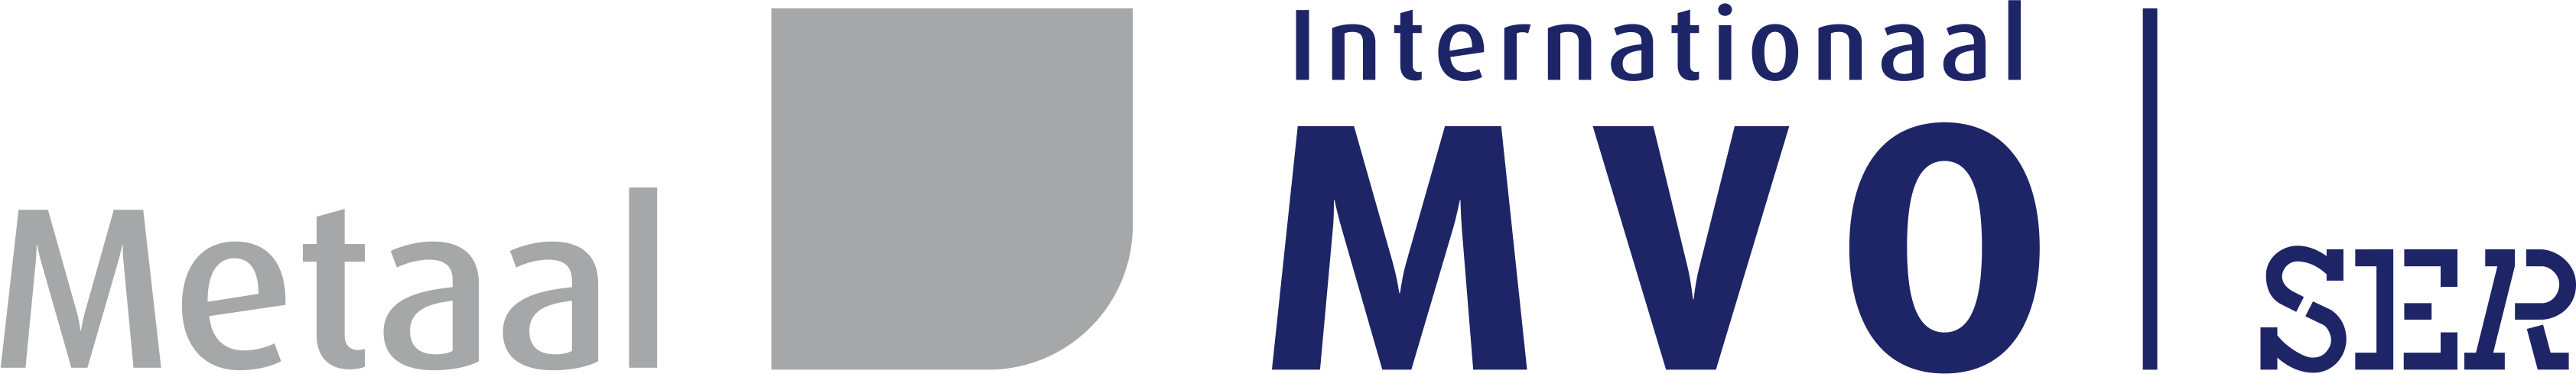 Metaal Internationaal MVO | SER